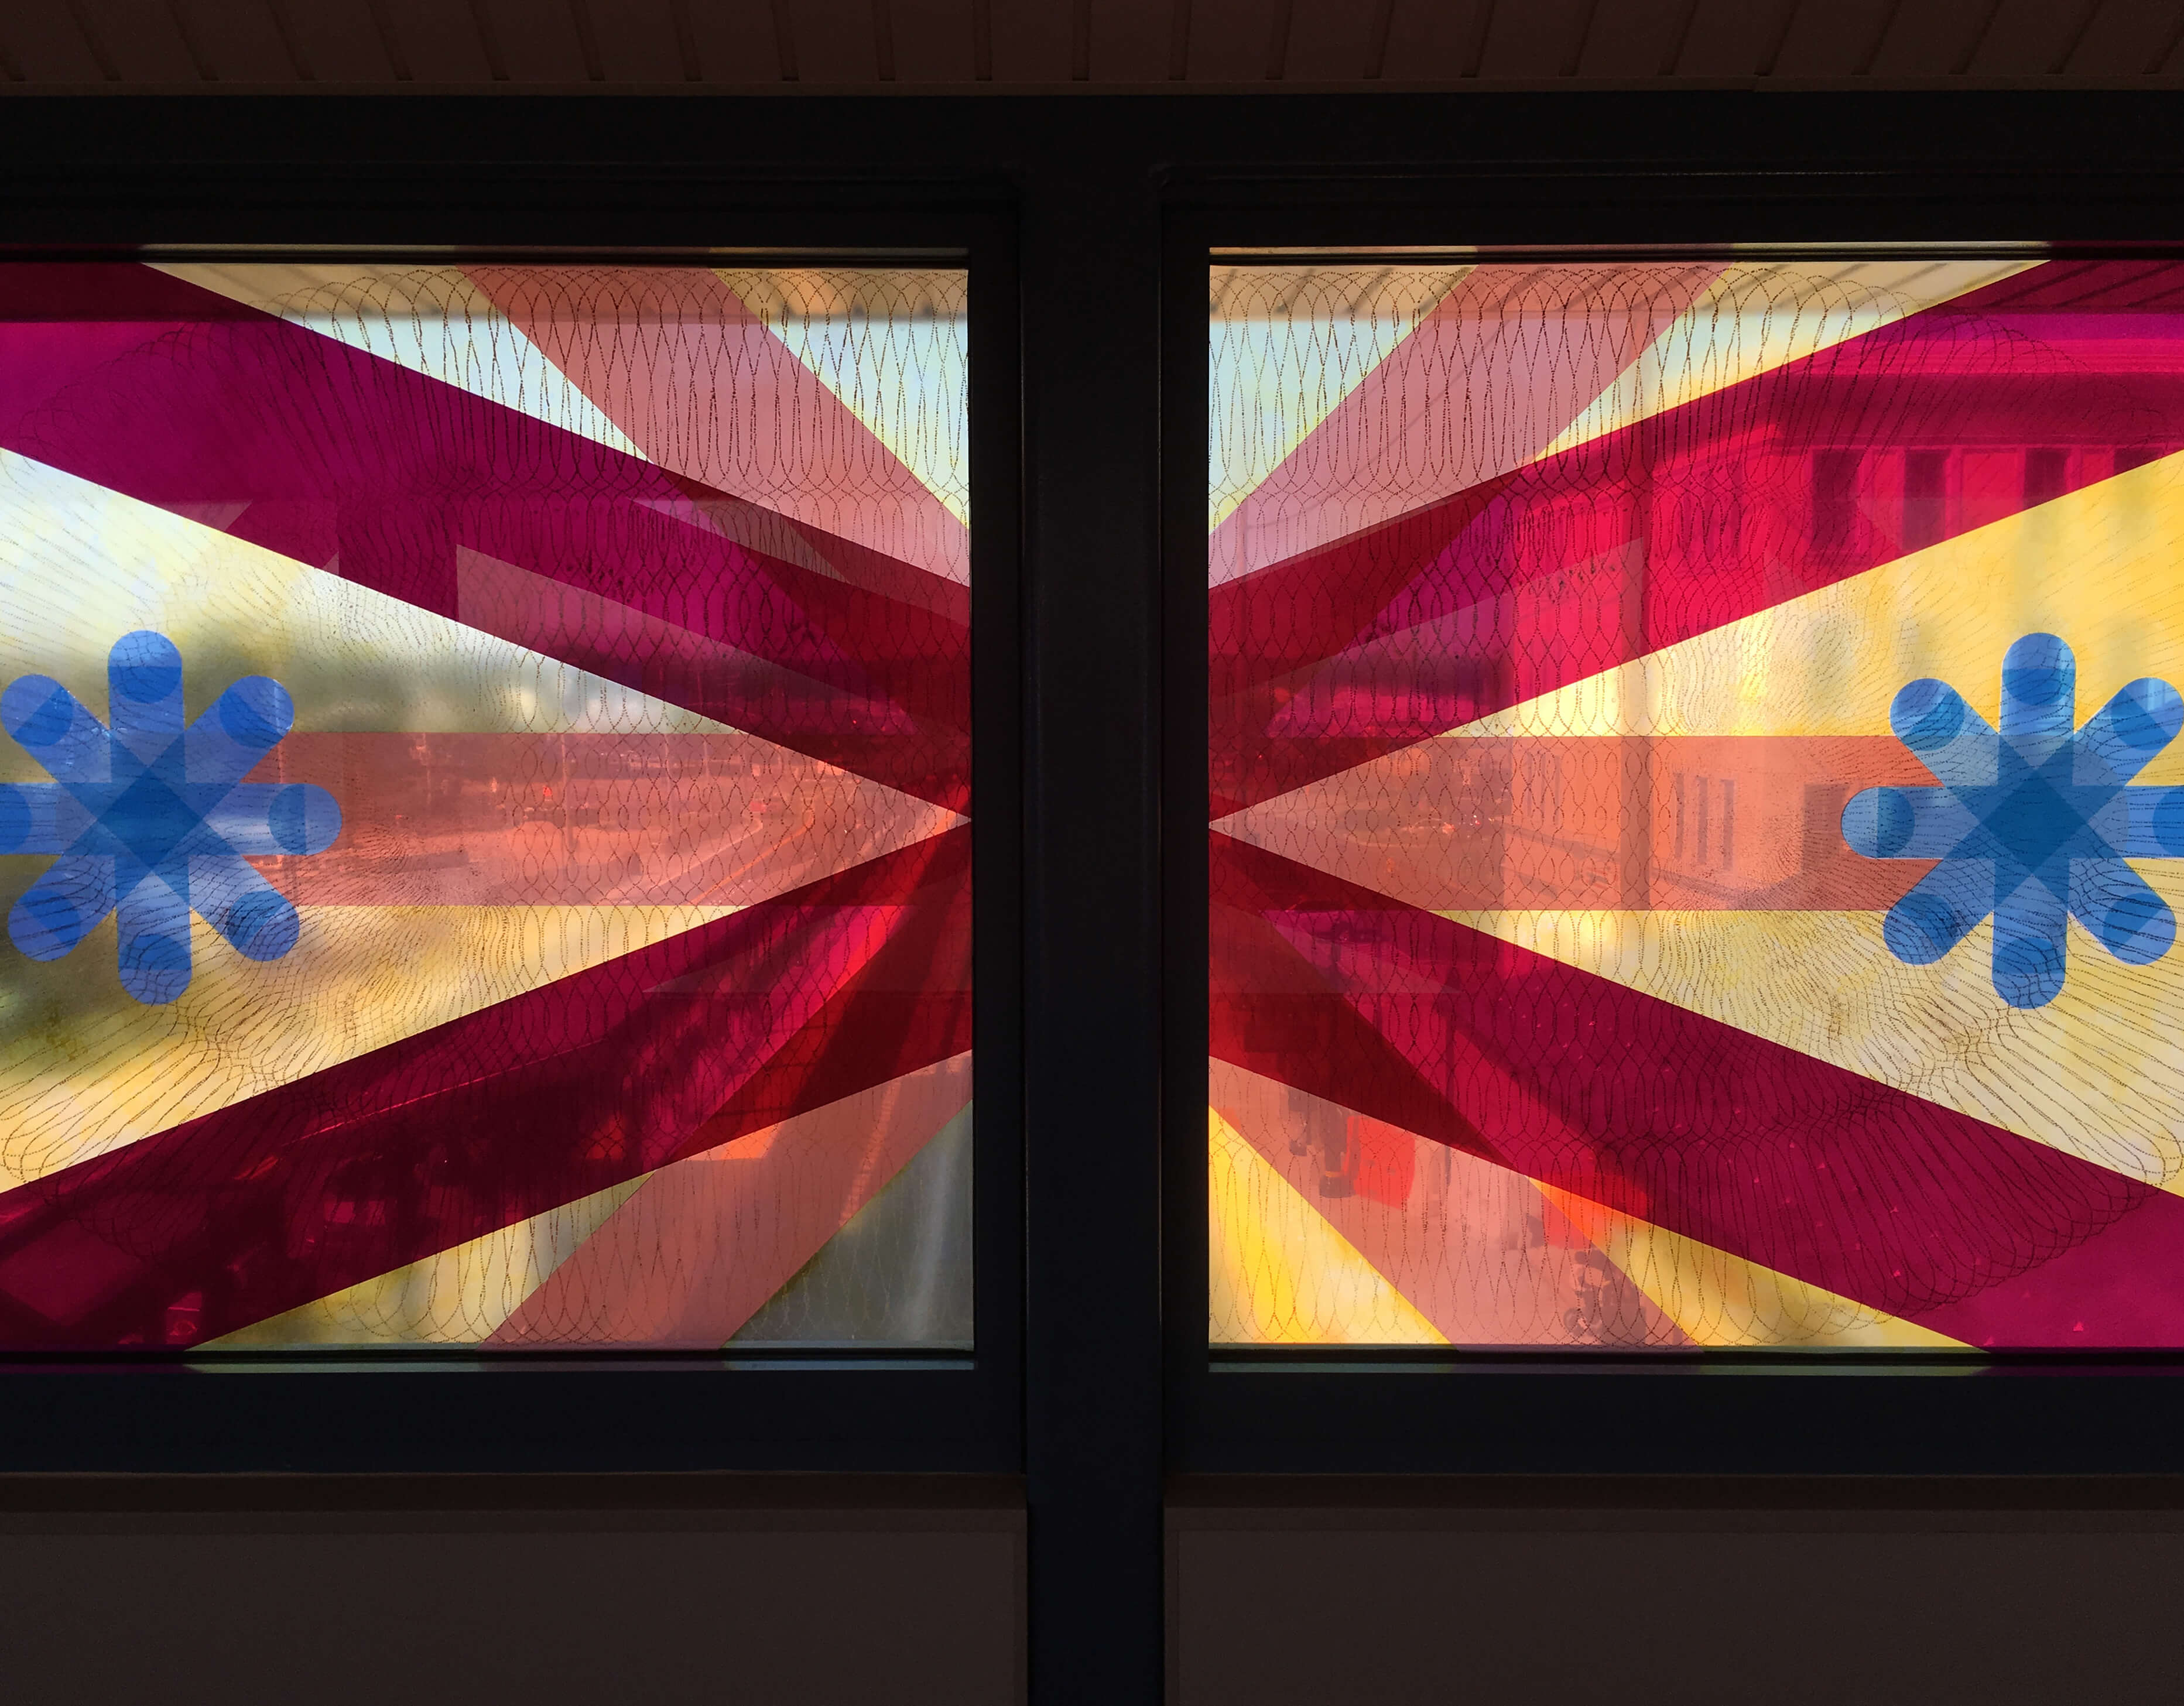 Artwork by Mary Judge &nbsp;&nbsp; <em>American Season</em><br />Glass art in paint and lamination by Mayer of Munich<br />Wyandanch Station, MTA Arts & Design and Long Island Rail Road